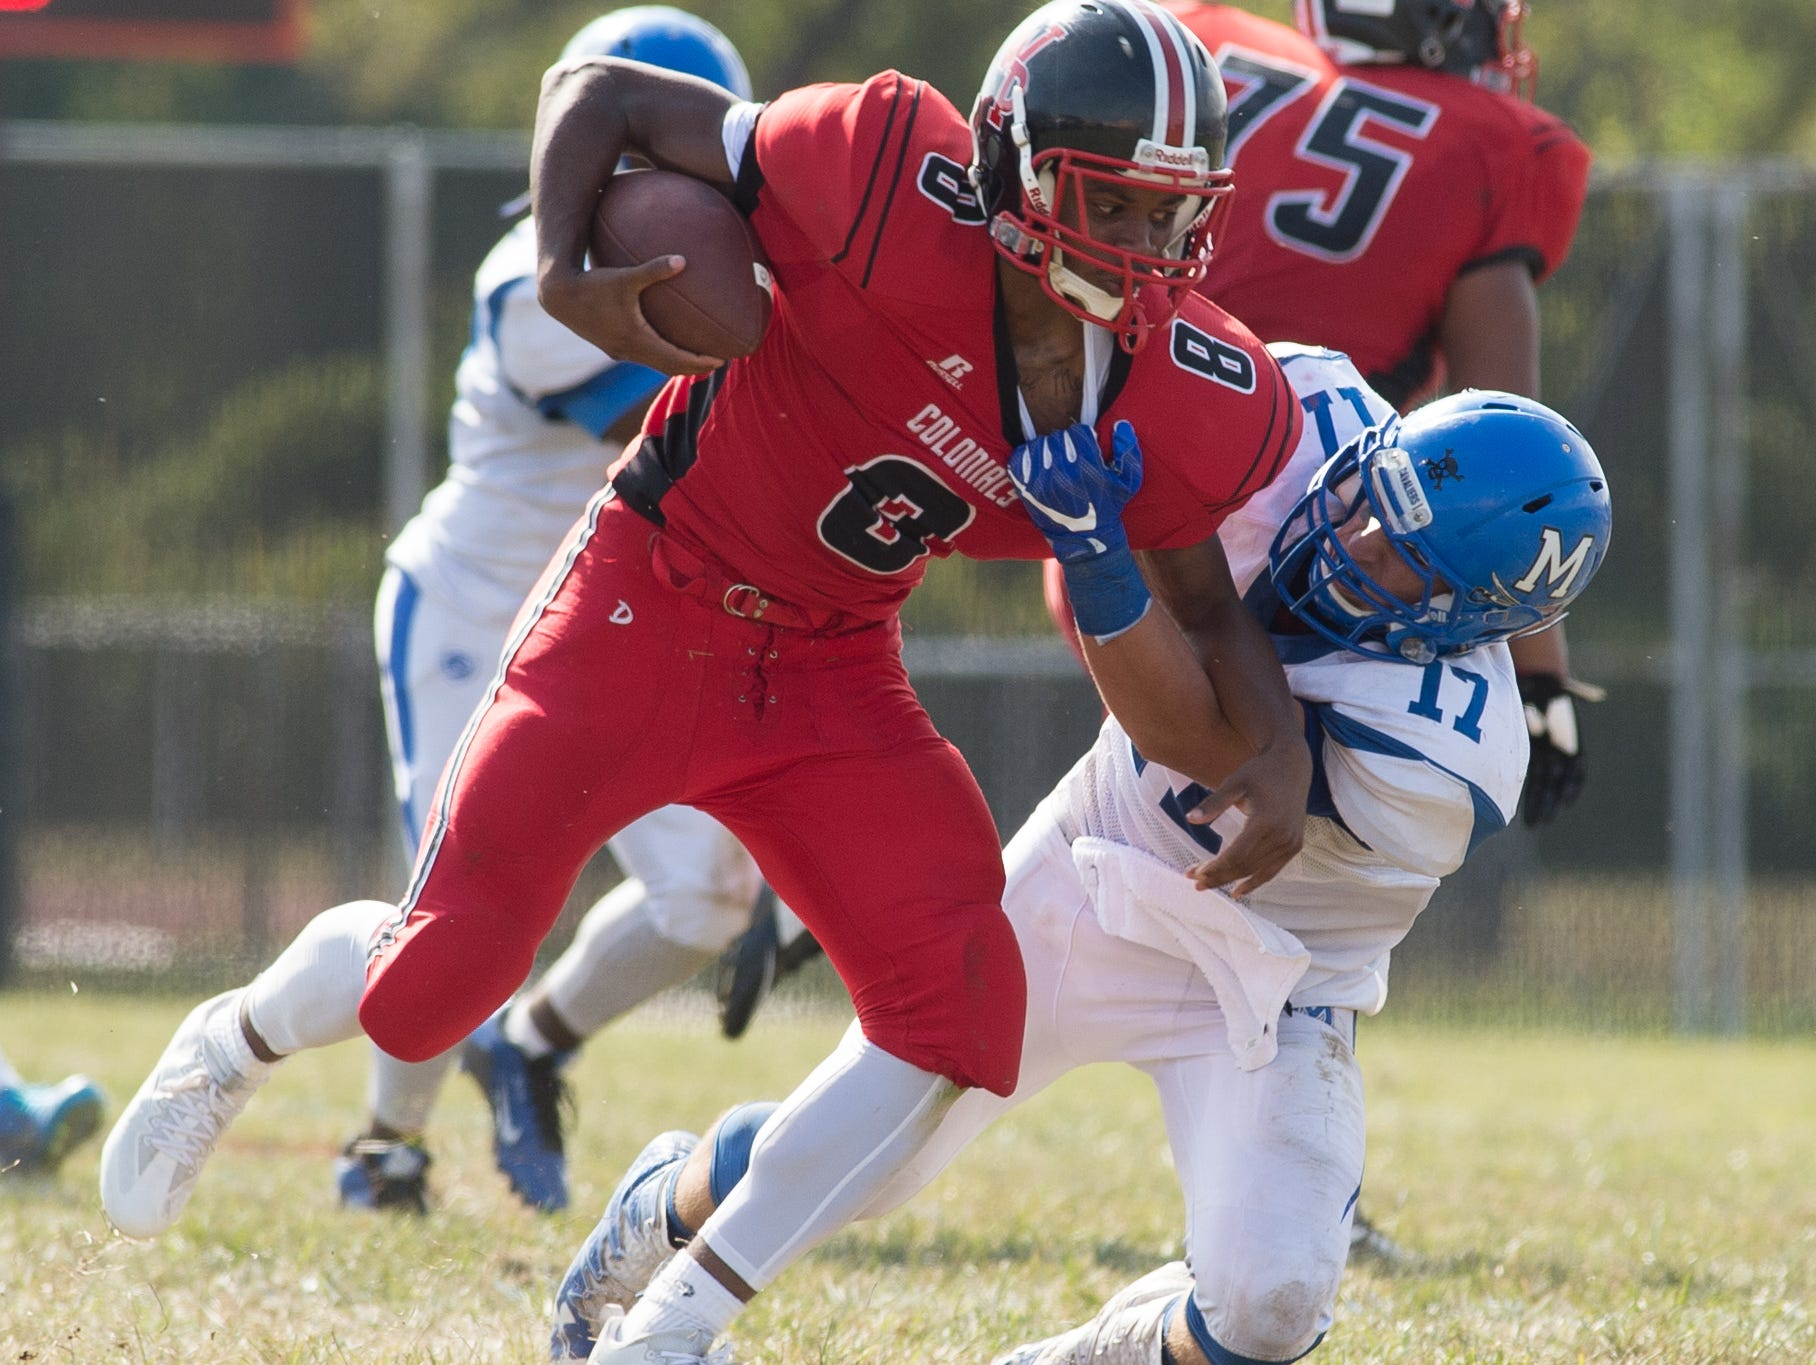 William Penn's Michael Mills (8) is tackled by Middletown's Spencer Harbert (17).